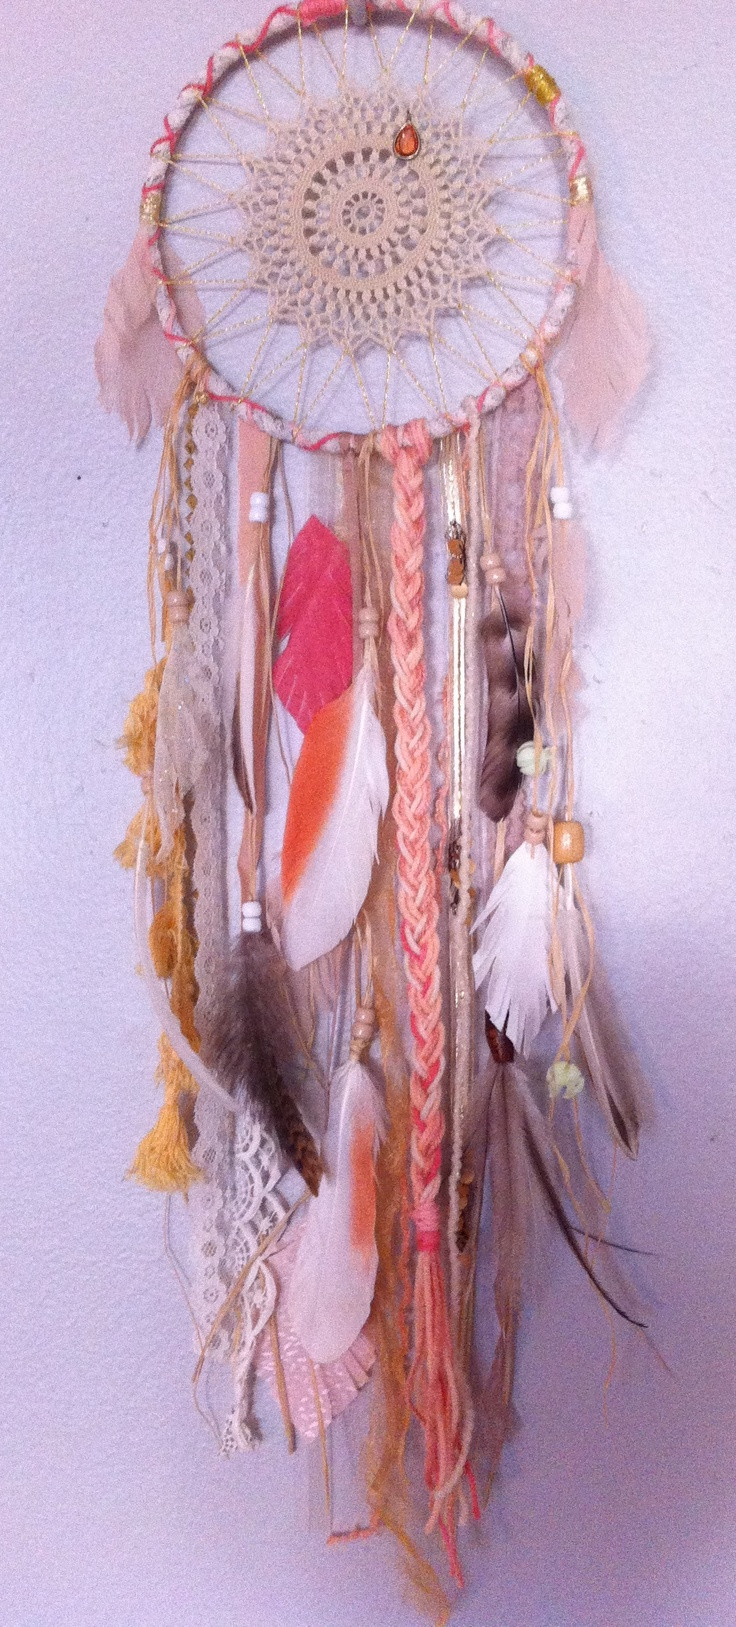 Best ideas about DIY Dream Catchers . Save or Pin 494 best Diy Dreamcatcher images on Pinterest Now.